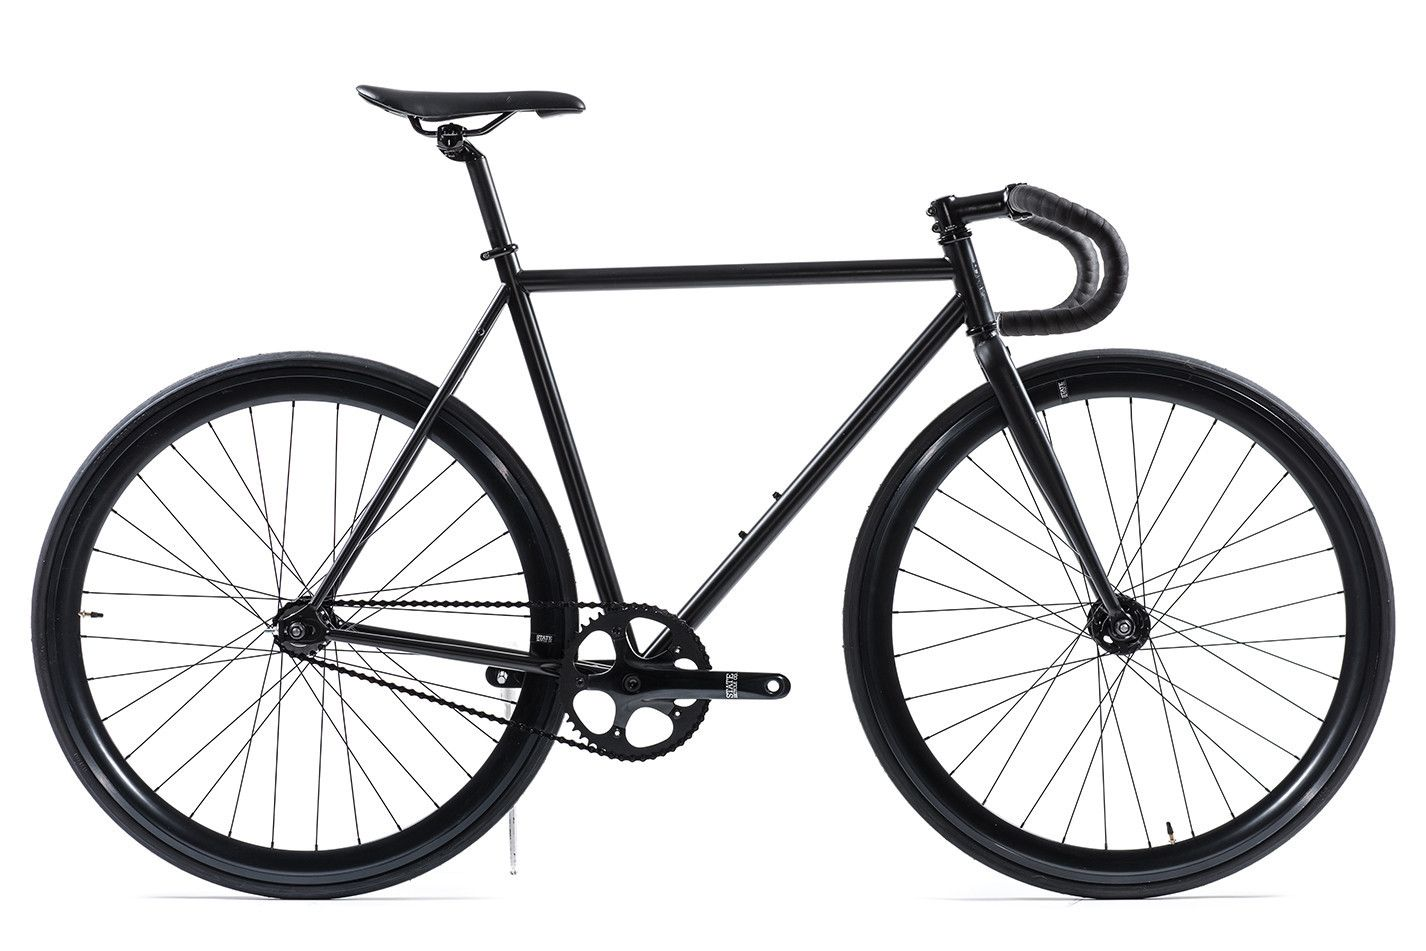 Matte black 5 fixed gear bike by state bicycle co 4130 core line fixed